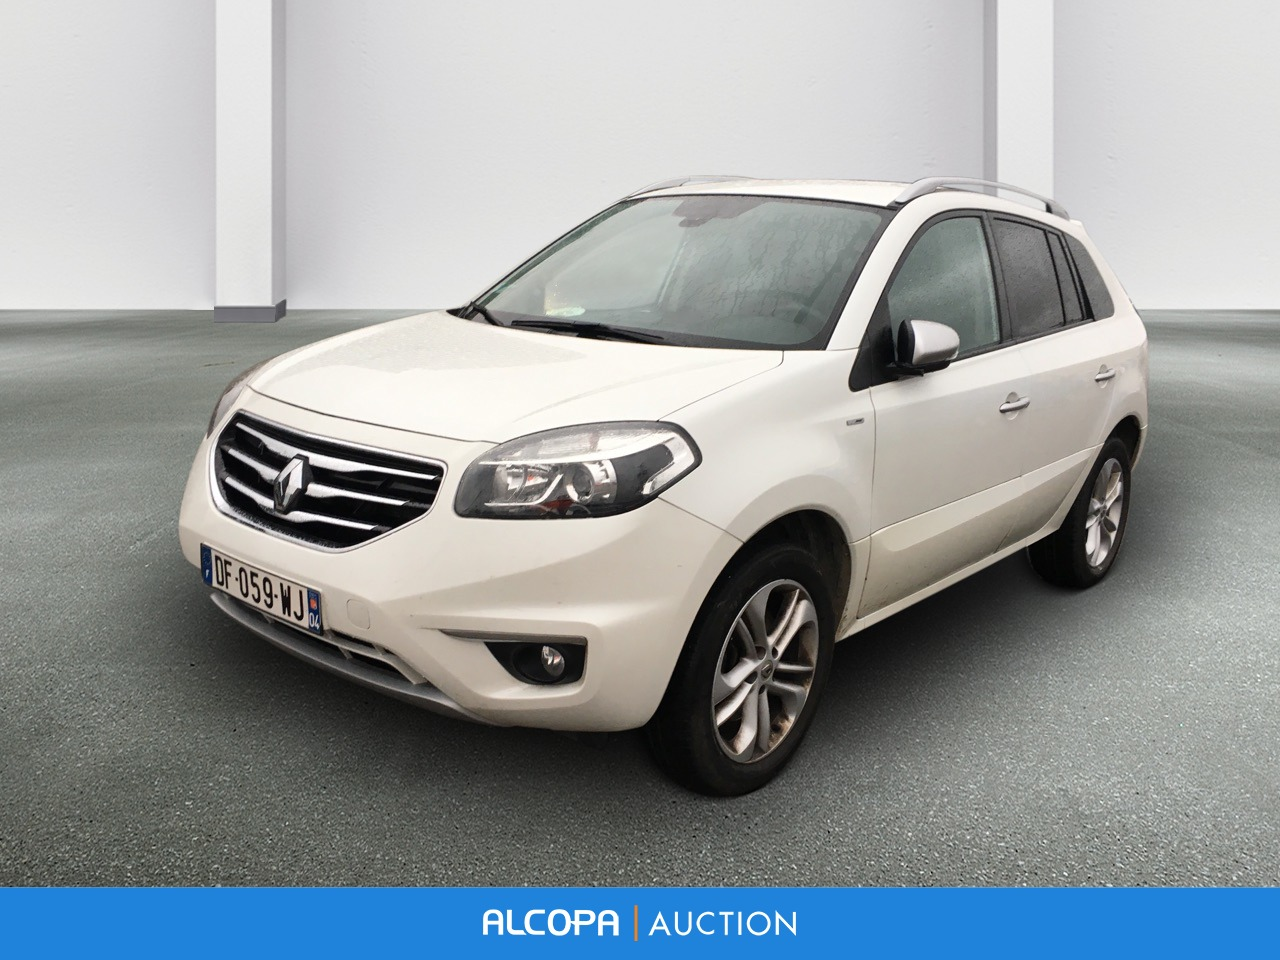 renault koleos koleos 2 0 dci 150 bose edition marseille alcopa auction. Black Bedroom Furniture Sets. Home Design Ideas